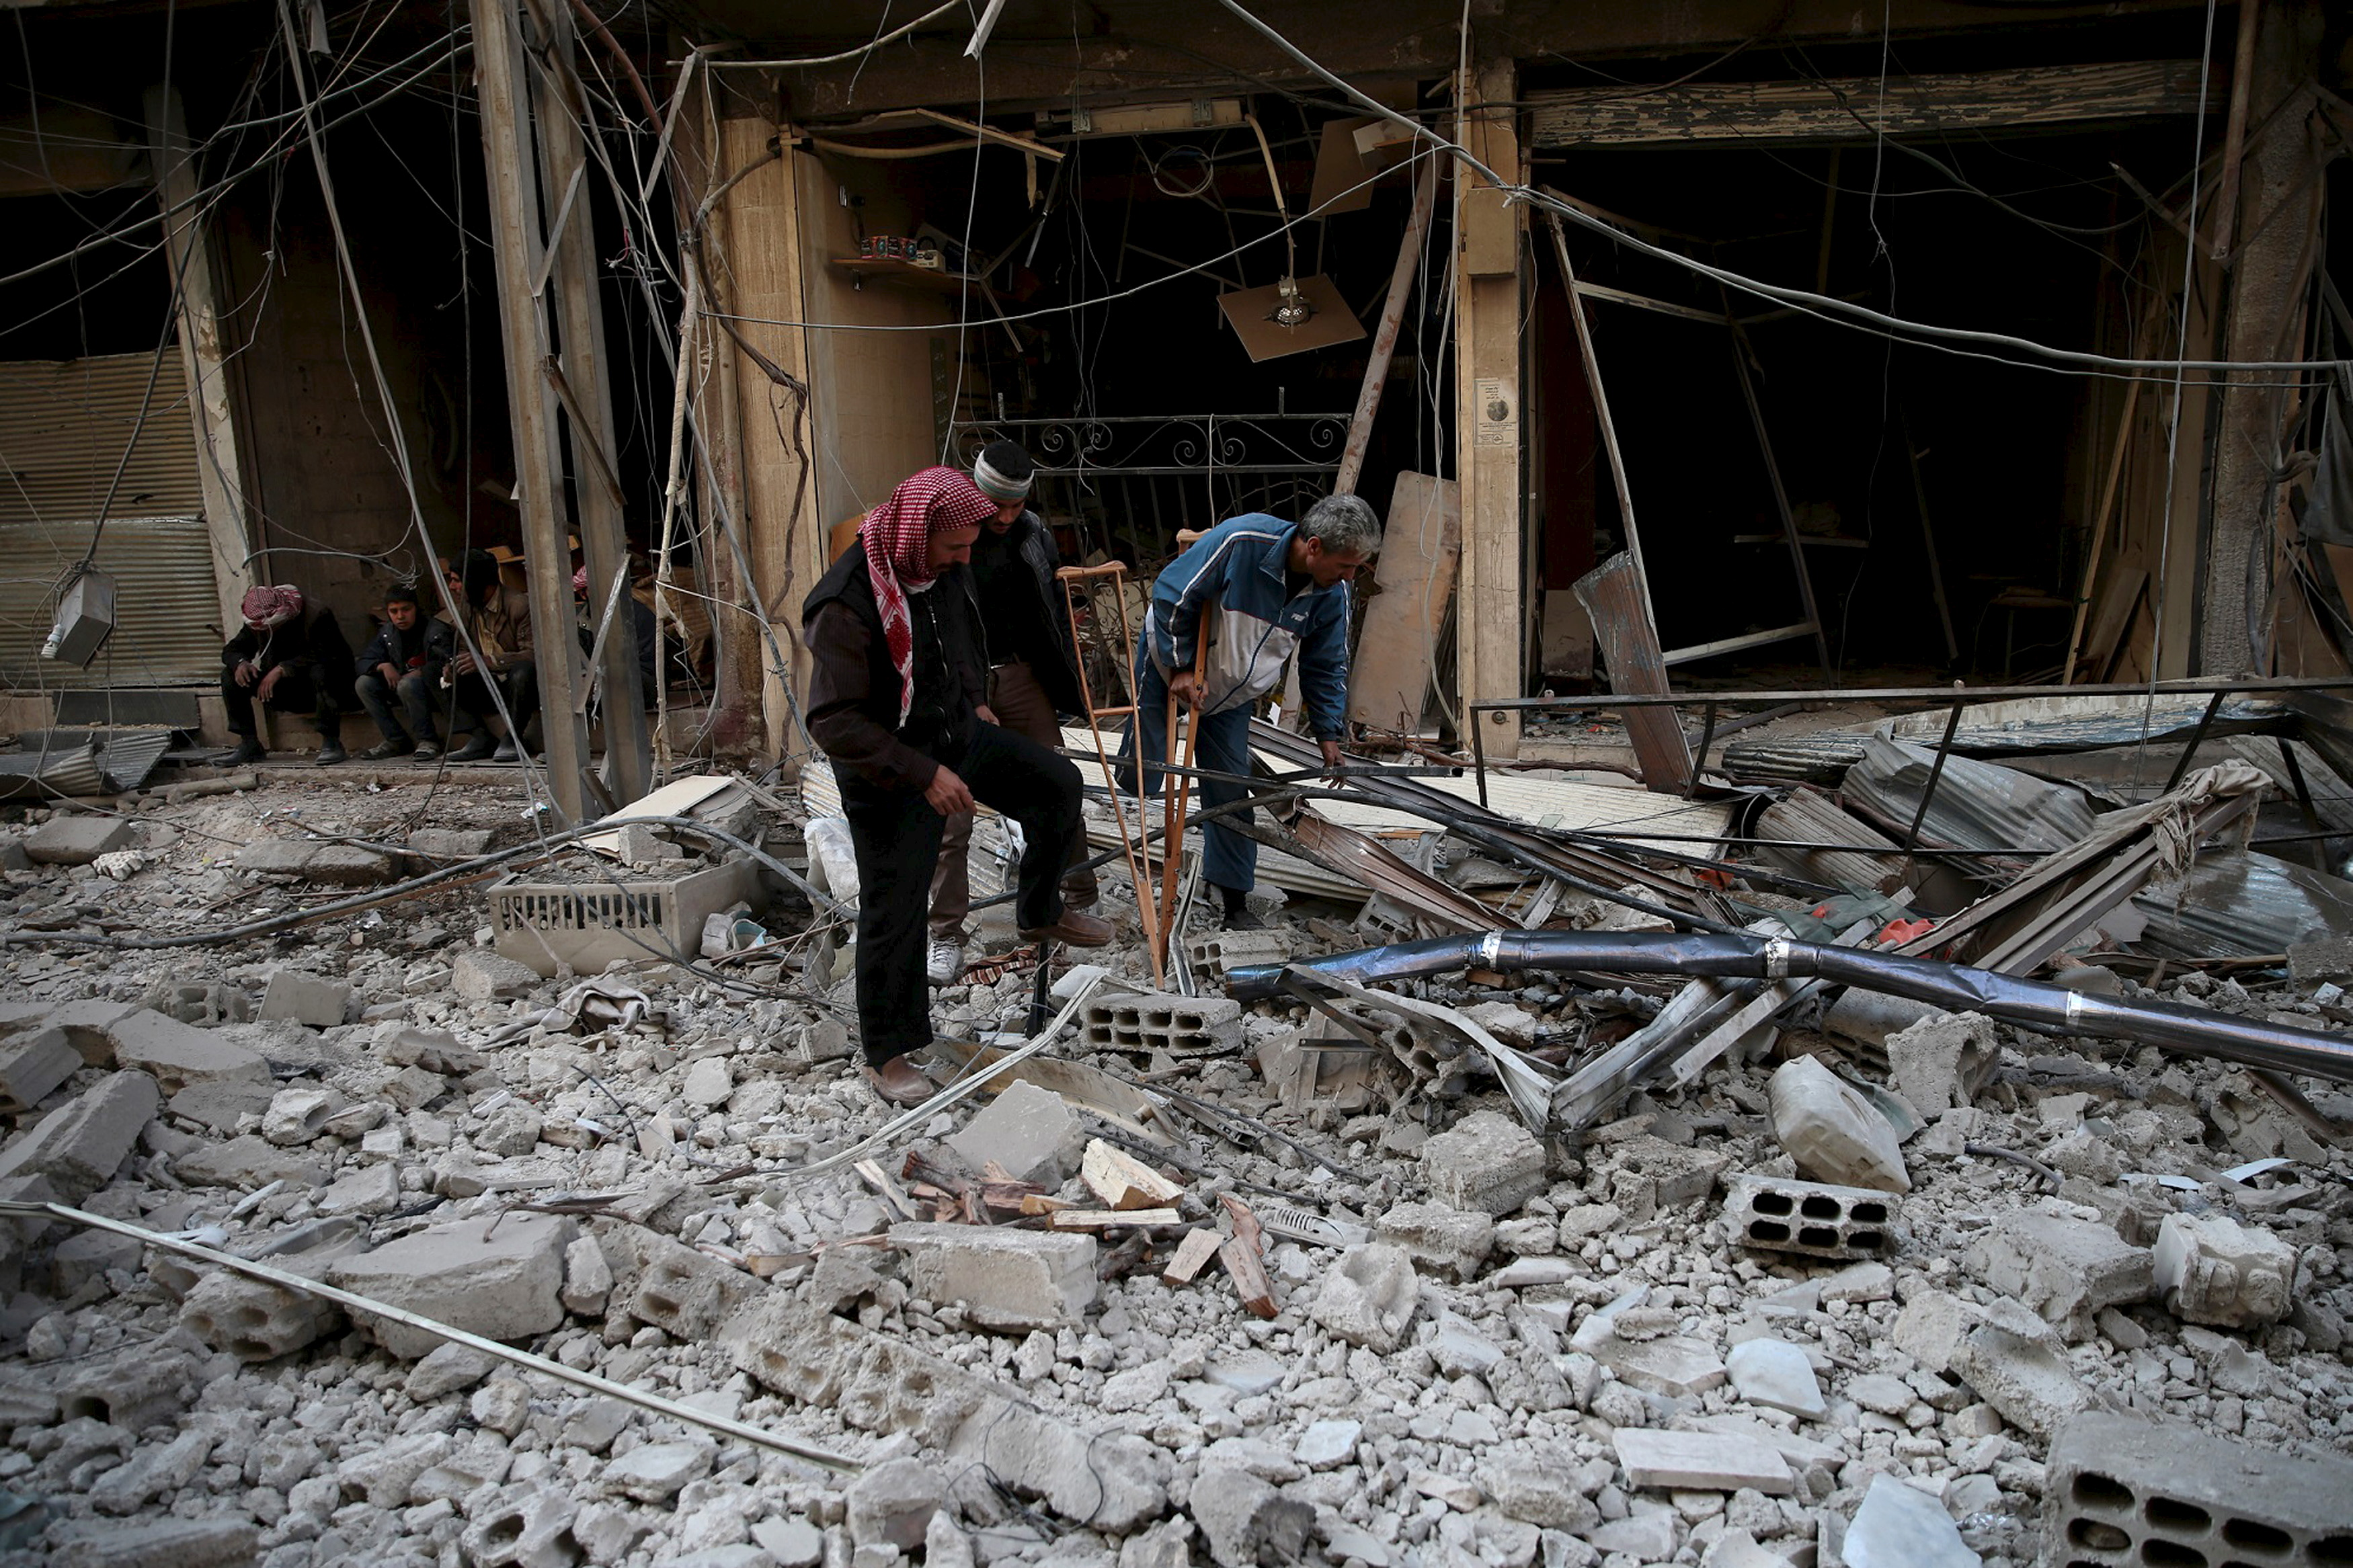 Men search for belongings at a site hit by missiles in the Douma neighborhood of Damascus on Dec. 13, 2015